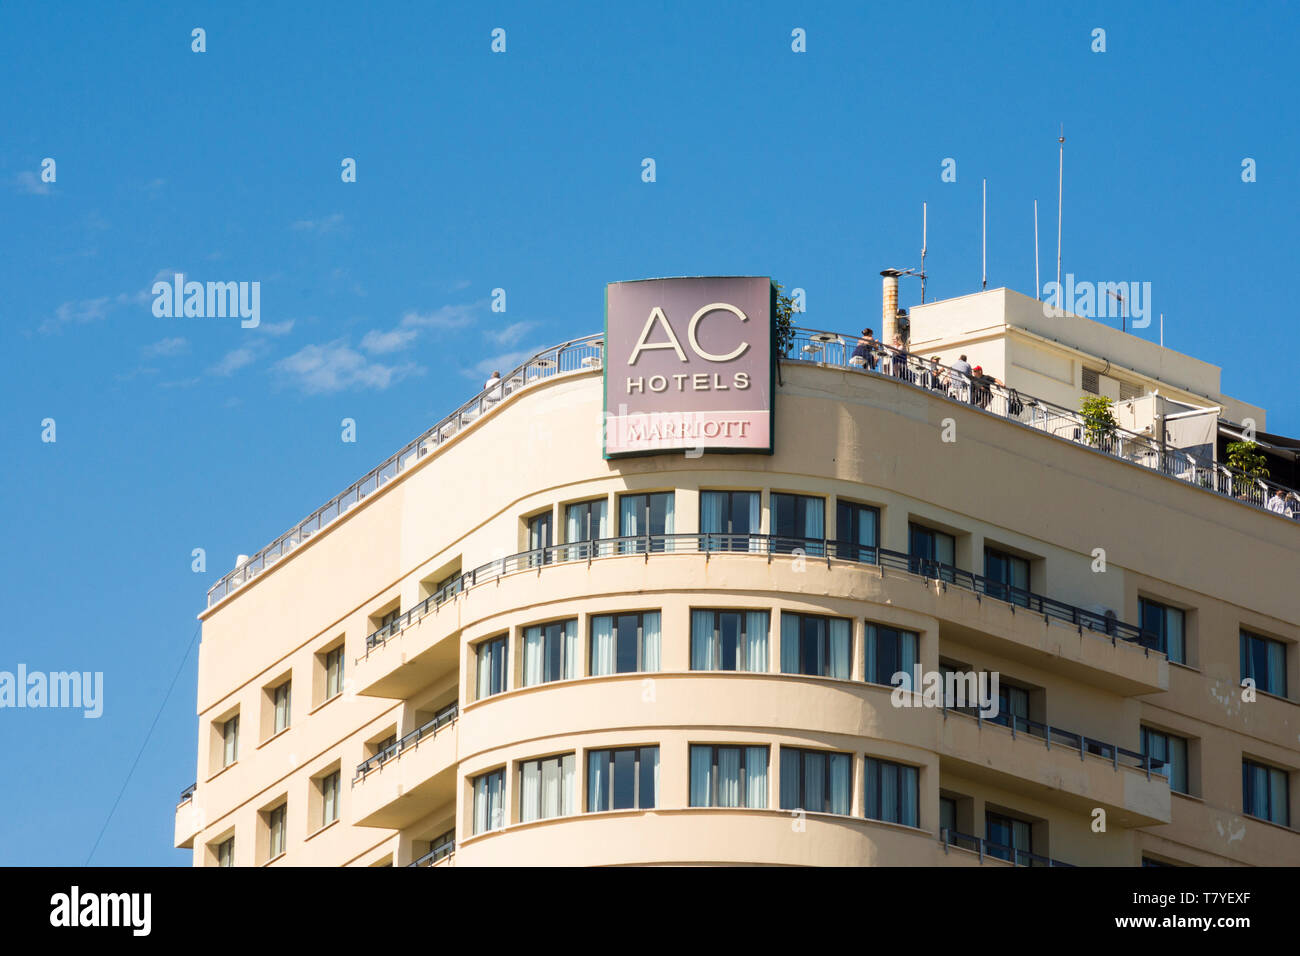 Facade AC Hotel Malaga Palacio, hotels, with rooftop terrace, Malaga, Andalusia, Spain. - Stock Image